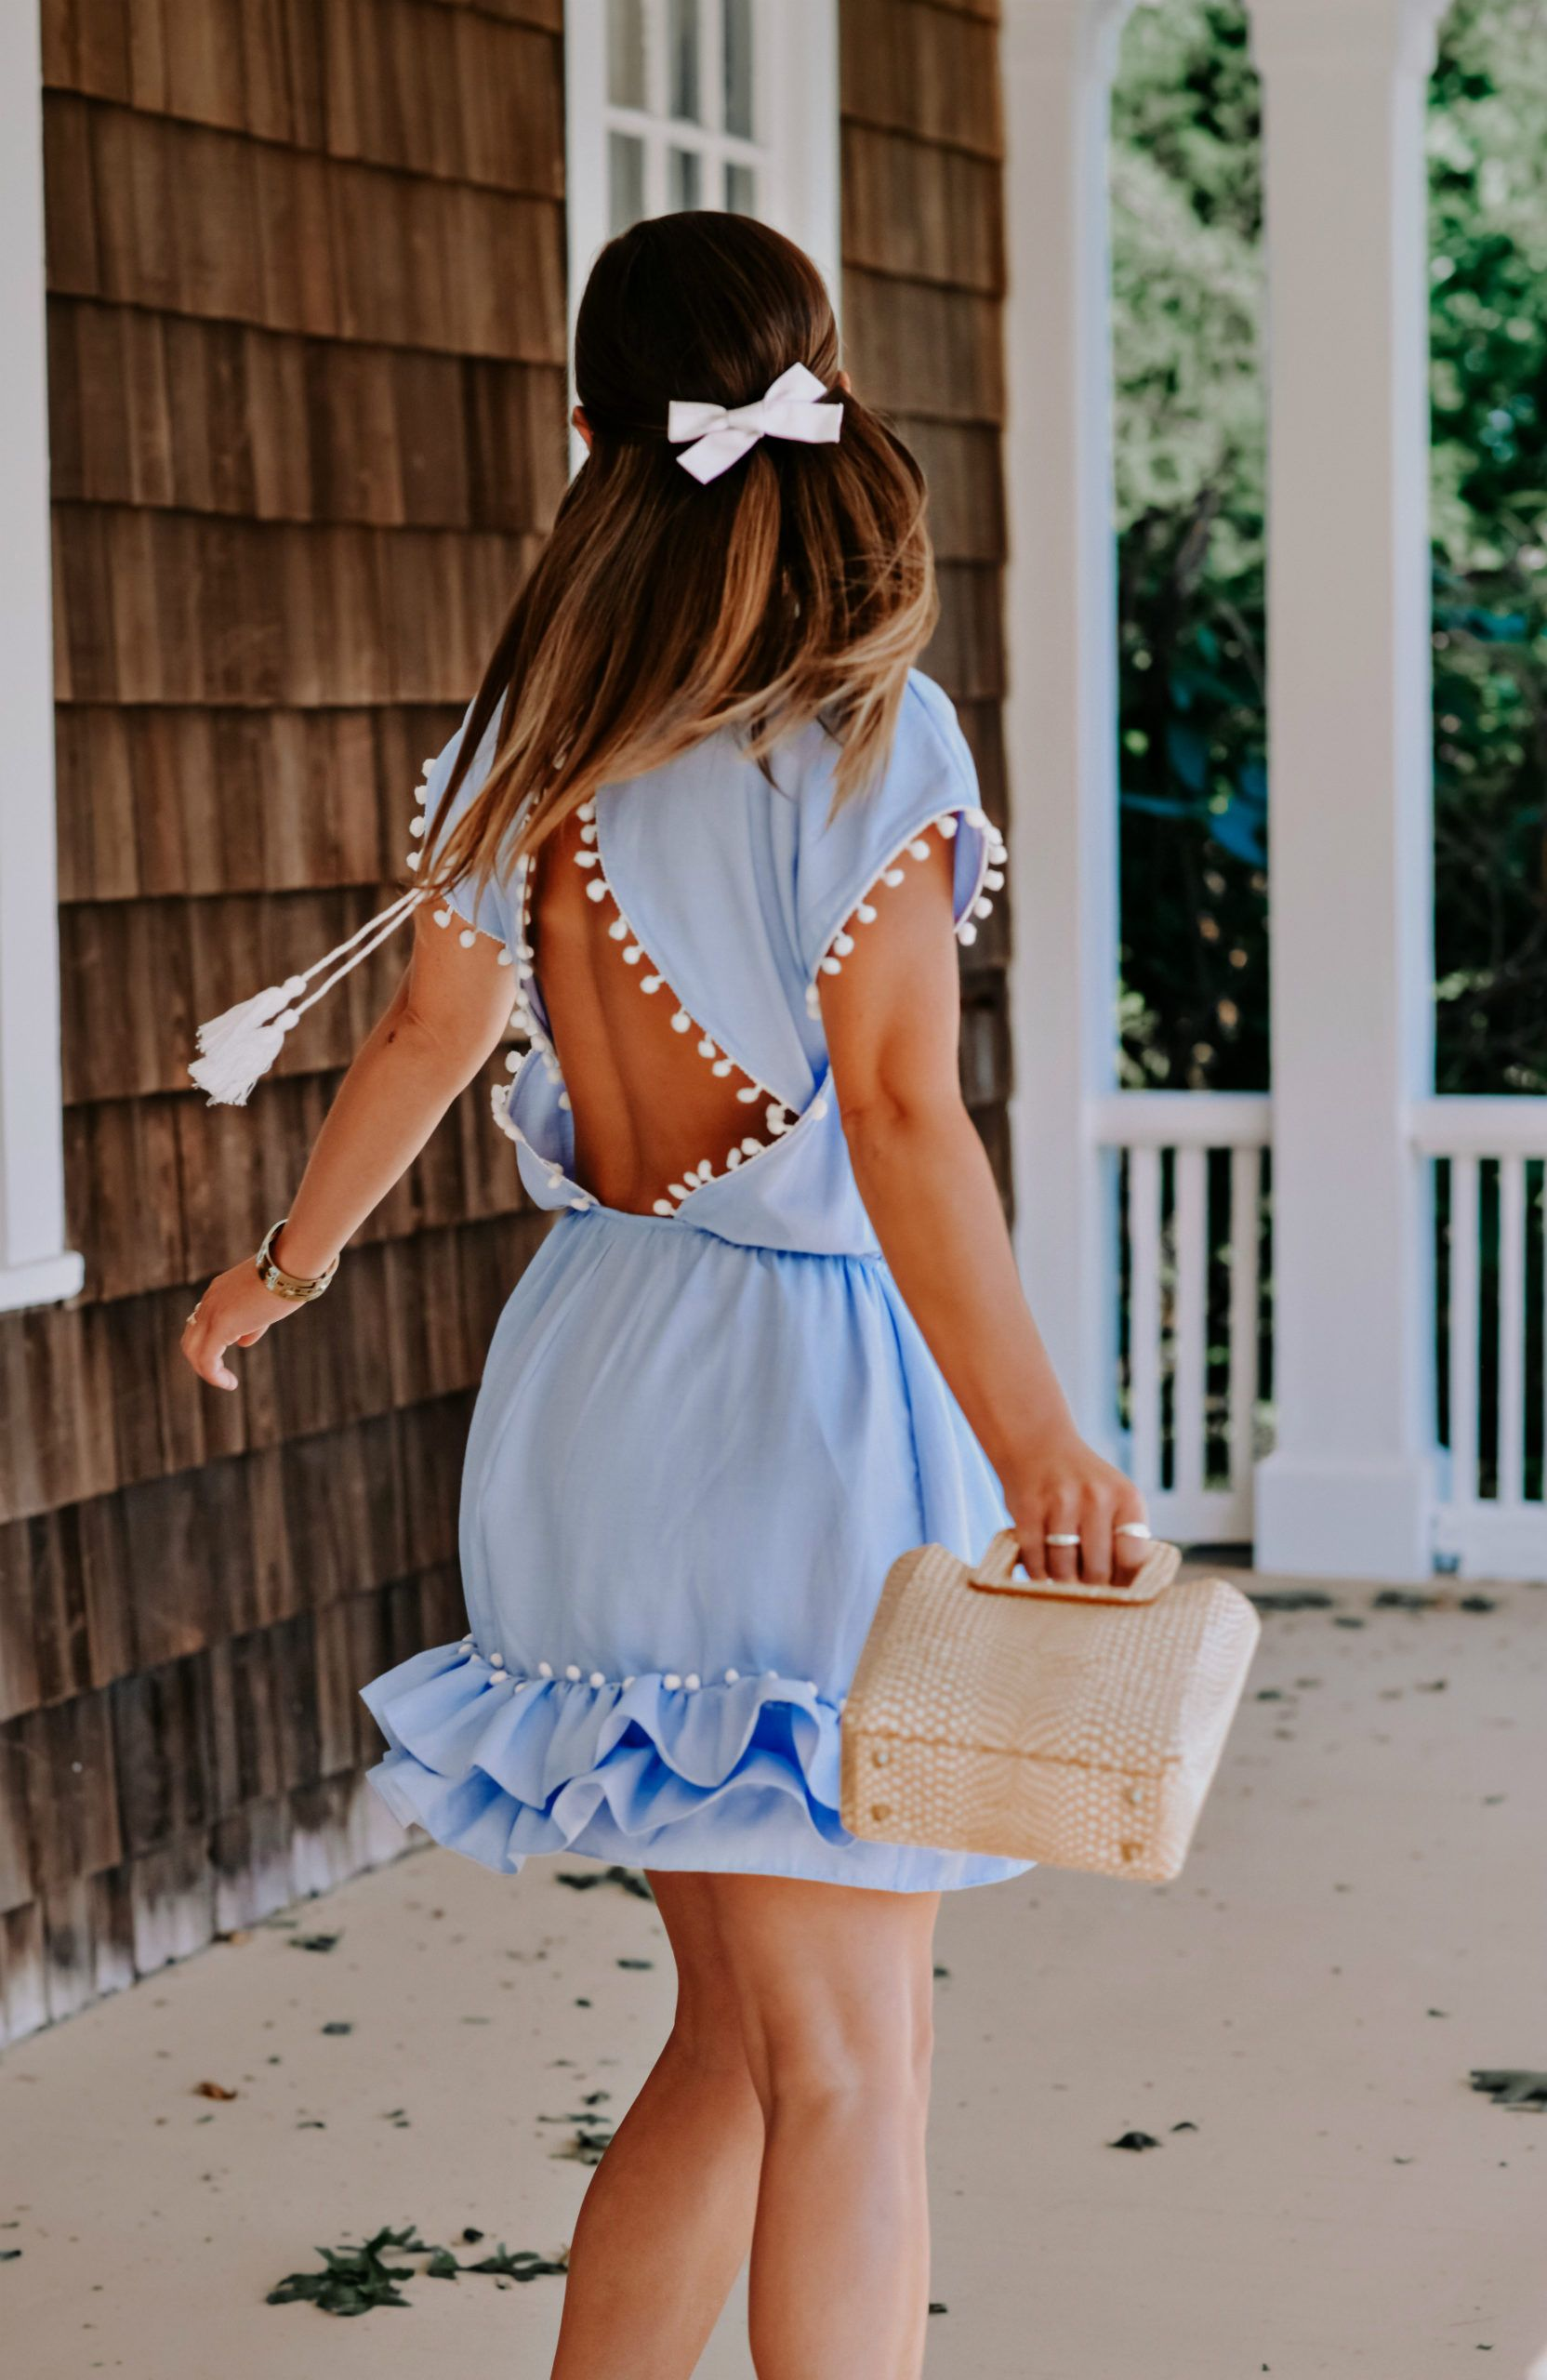 Fun Summer Dresses For Date Night To Be Bright Best Summer Dresses Summer Dresses Summer Dress Outfits [ 2560 x 1664 Pixel ]